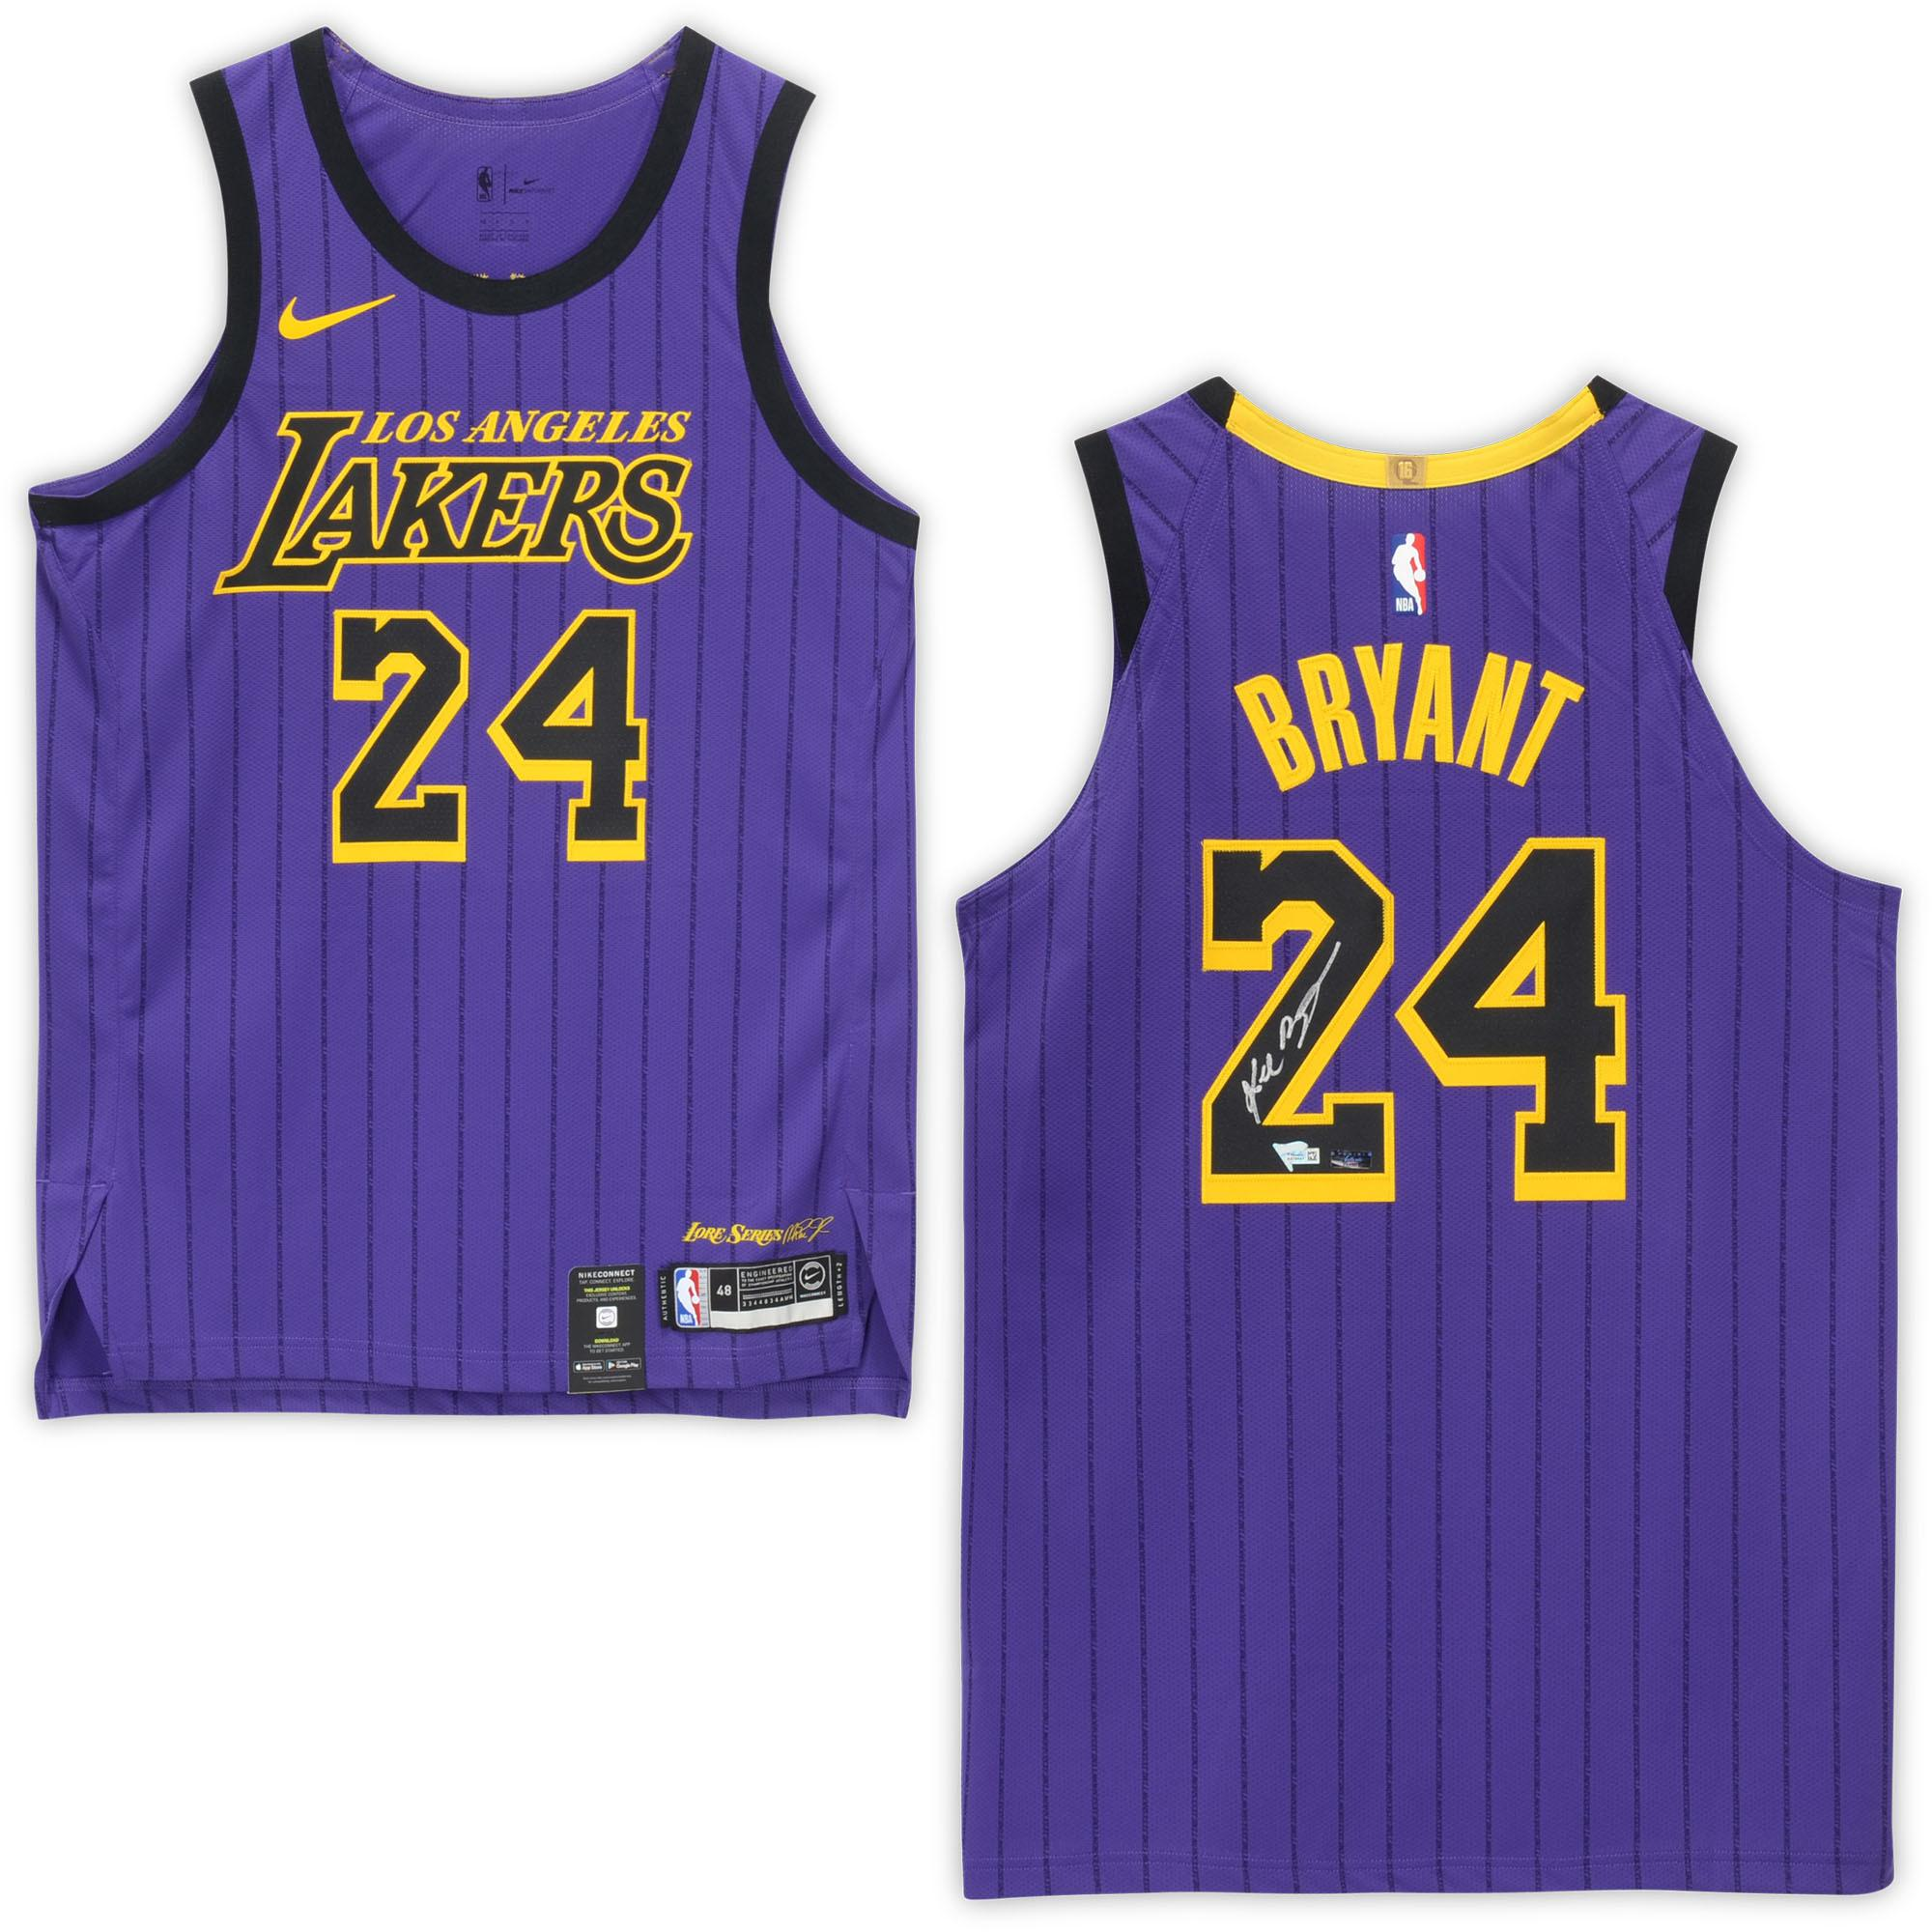 Kobe Bryant Los Angeles Lakers Autographed #24 City Edition Authentic Jersey - Panini Authentic - Fanatics Authentic Certified